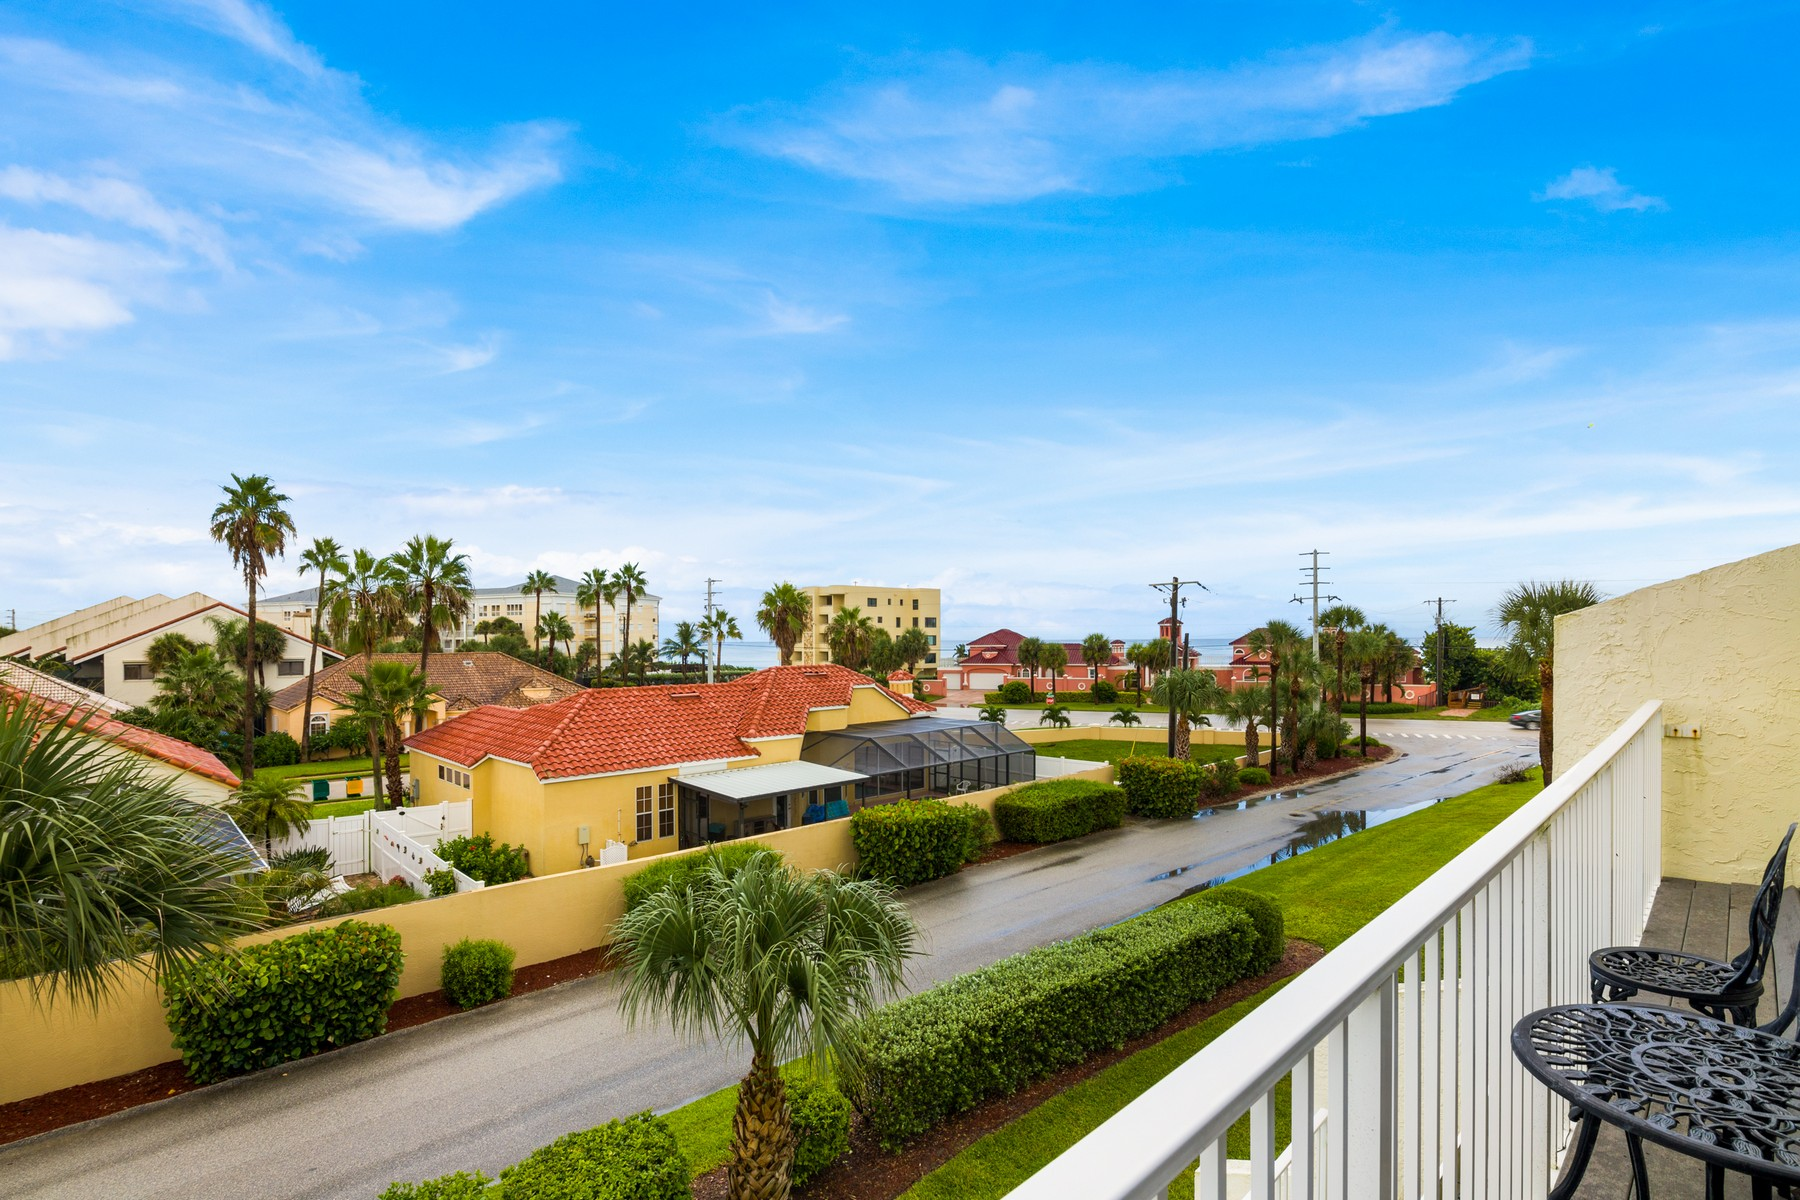 Condominiums for Sale at Coastal Abode with Warm Hues & Beachy Theme 101 La Costa Street Unit 5 Melbourne Beach, Florida 32951 United States